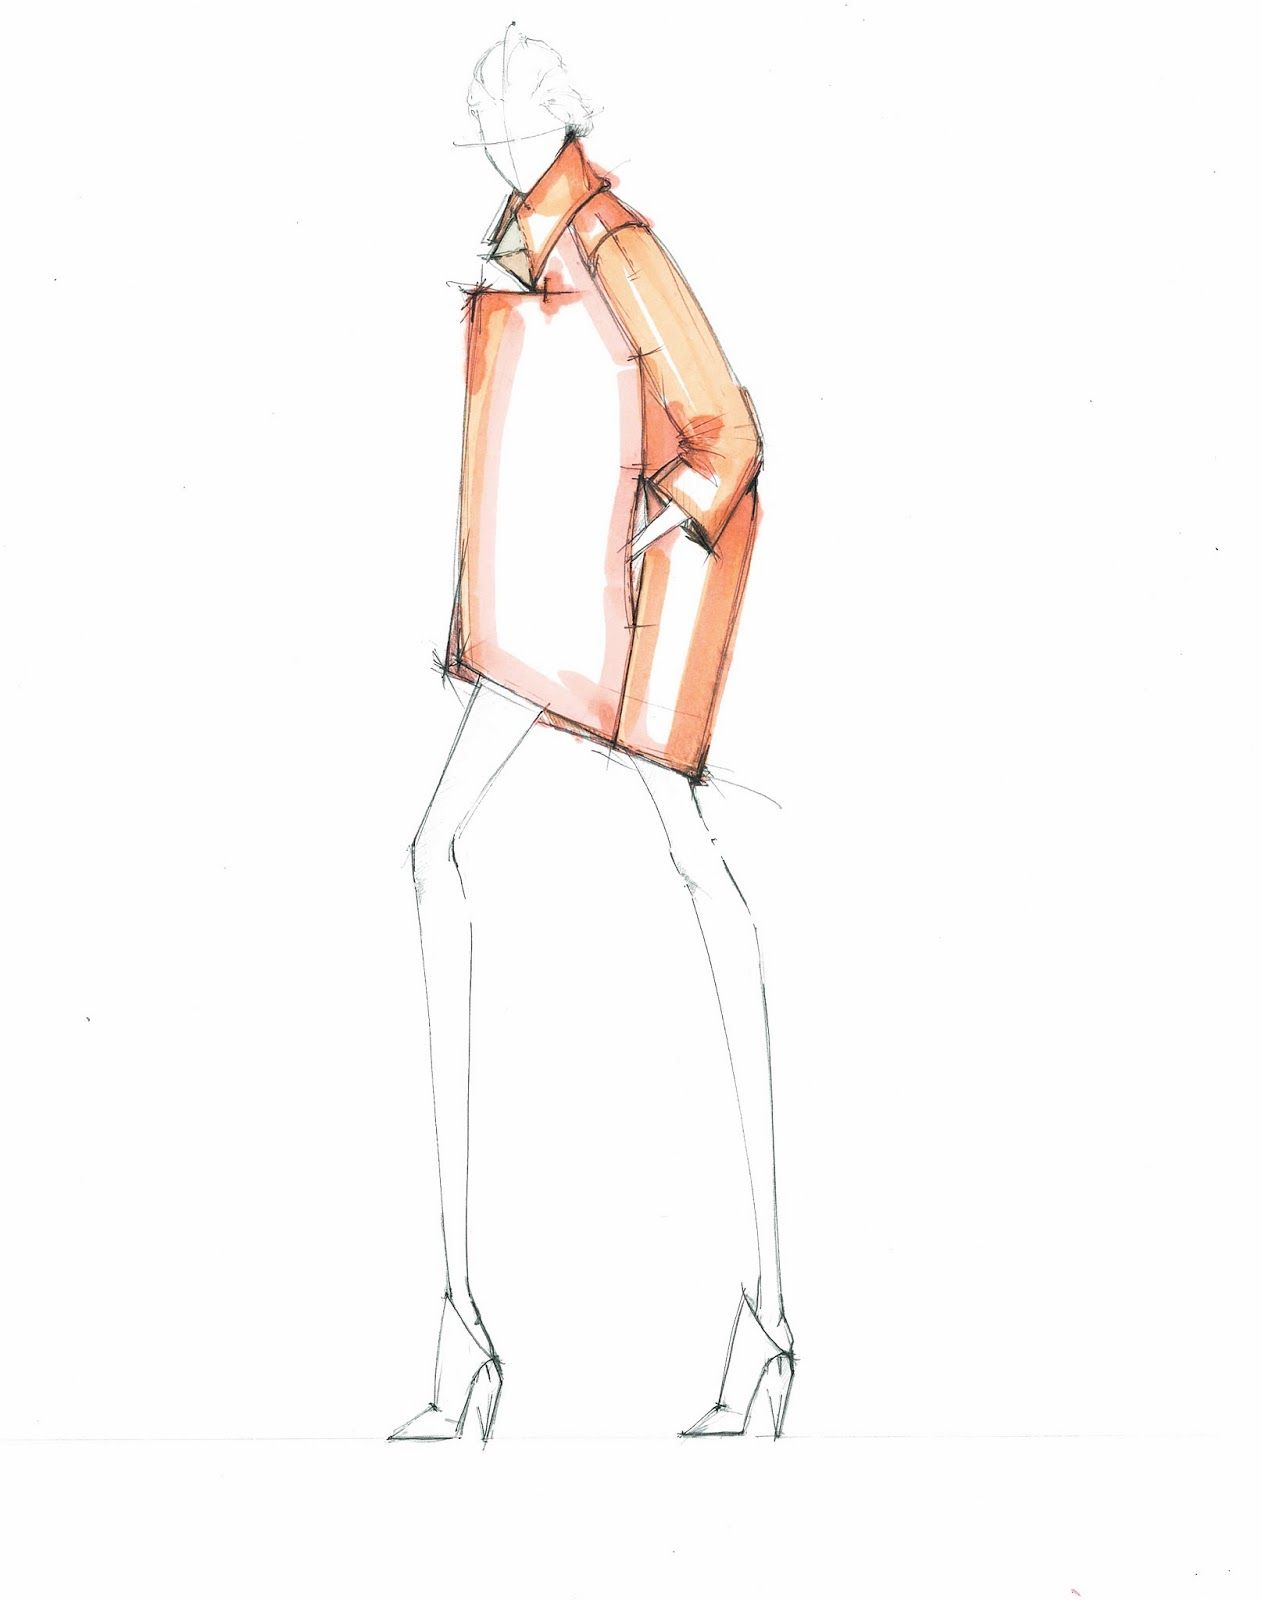 Alessandra de gregorio fashion illustration fashion illustrations